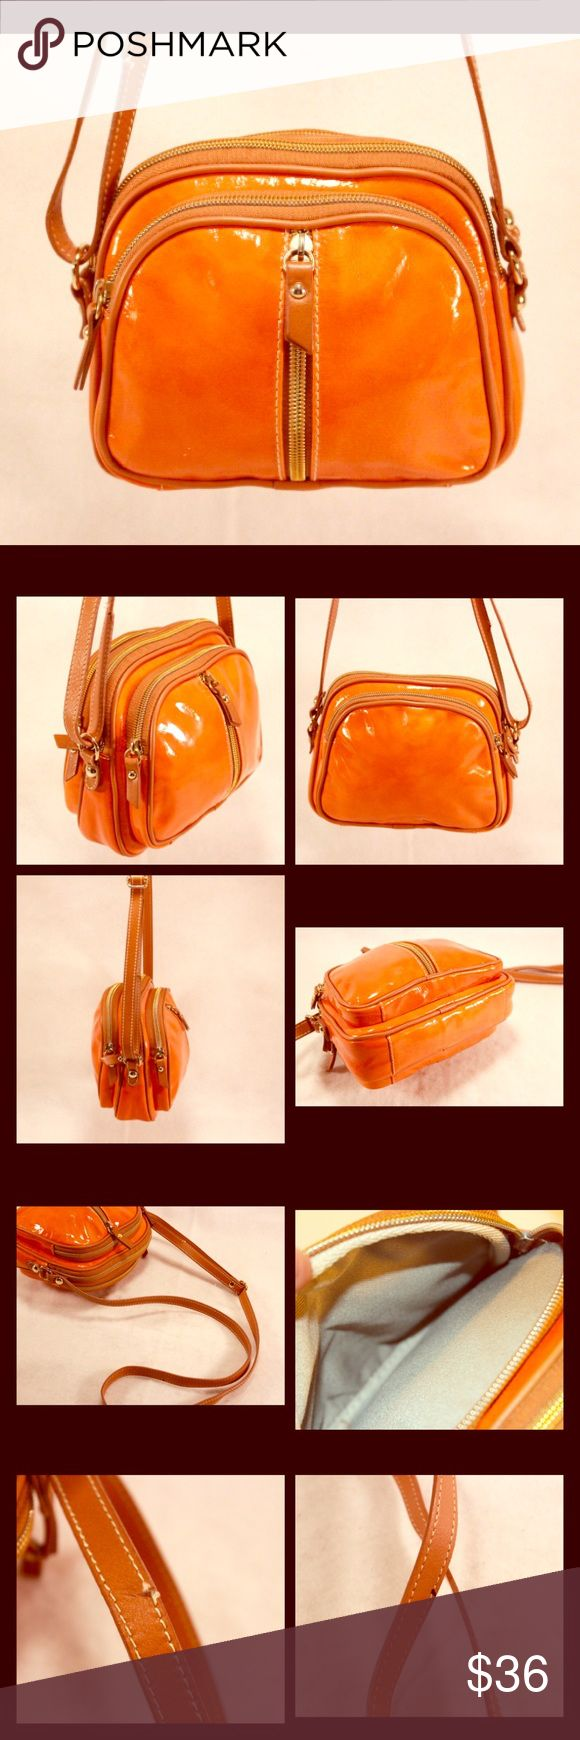 """VALENTINA Italia Orange Purse with Tan Leather VALENTINA Italia Orange Purse with Tan Leather. Made in Italy. Orange Material is Patent Leather. Four Zip Compartments. 9 x 7 x 2.5 with Adjustable Shoulder Strap Now Set to 20"""".  Orig. $ 148. Valentina Italia Bags"""